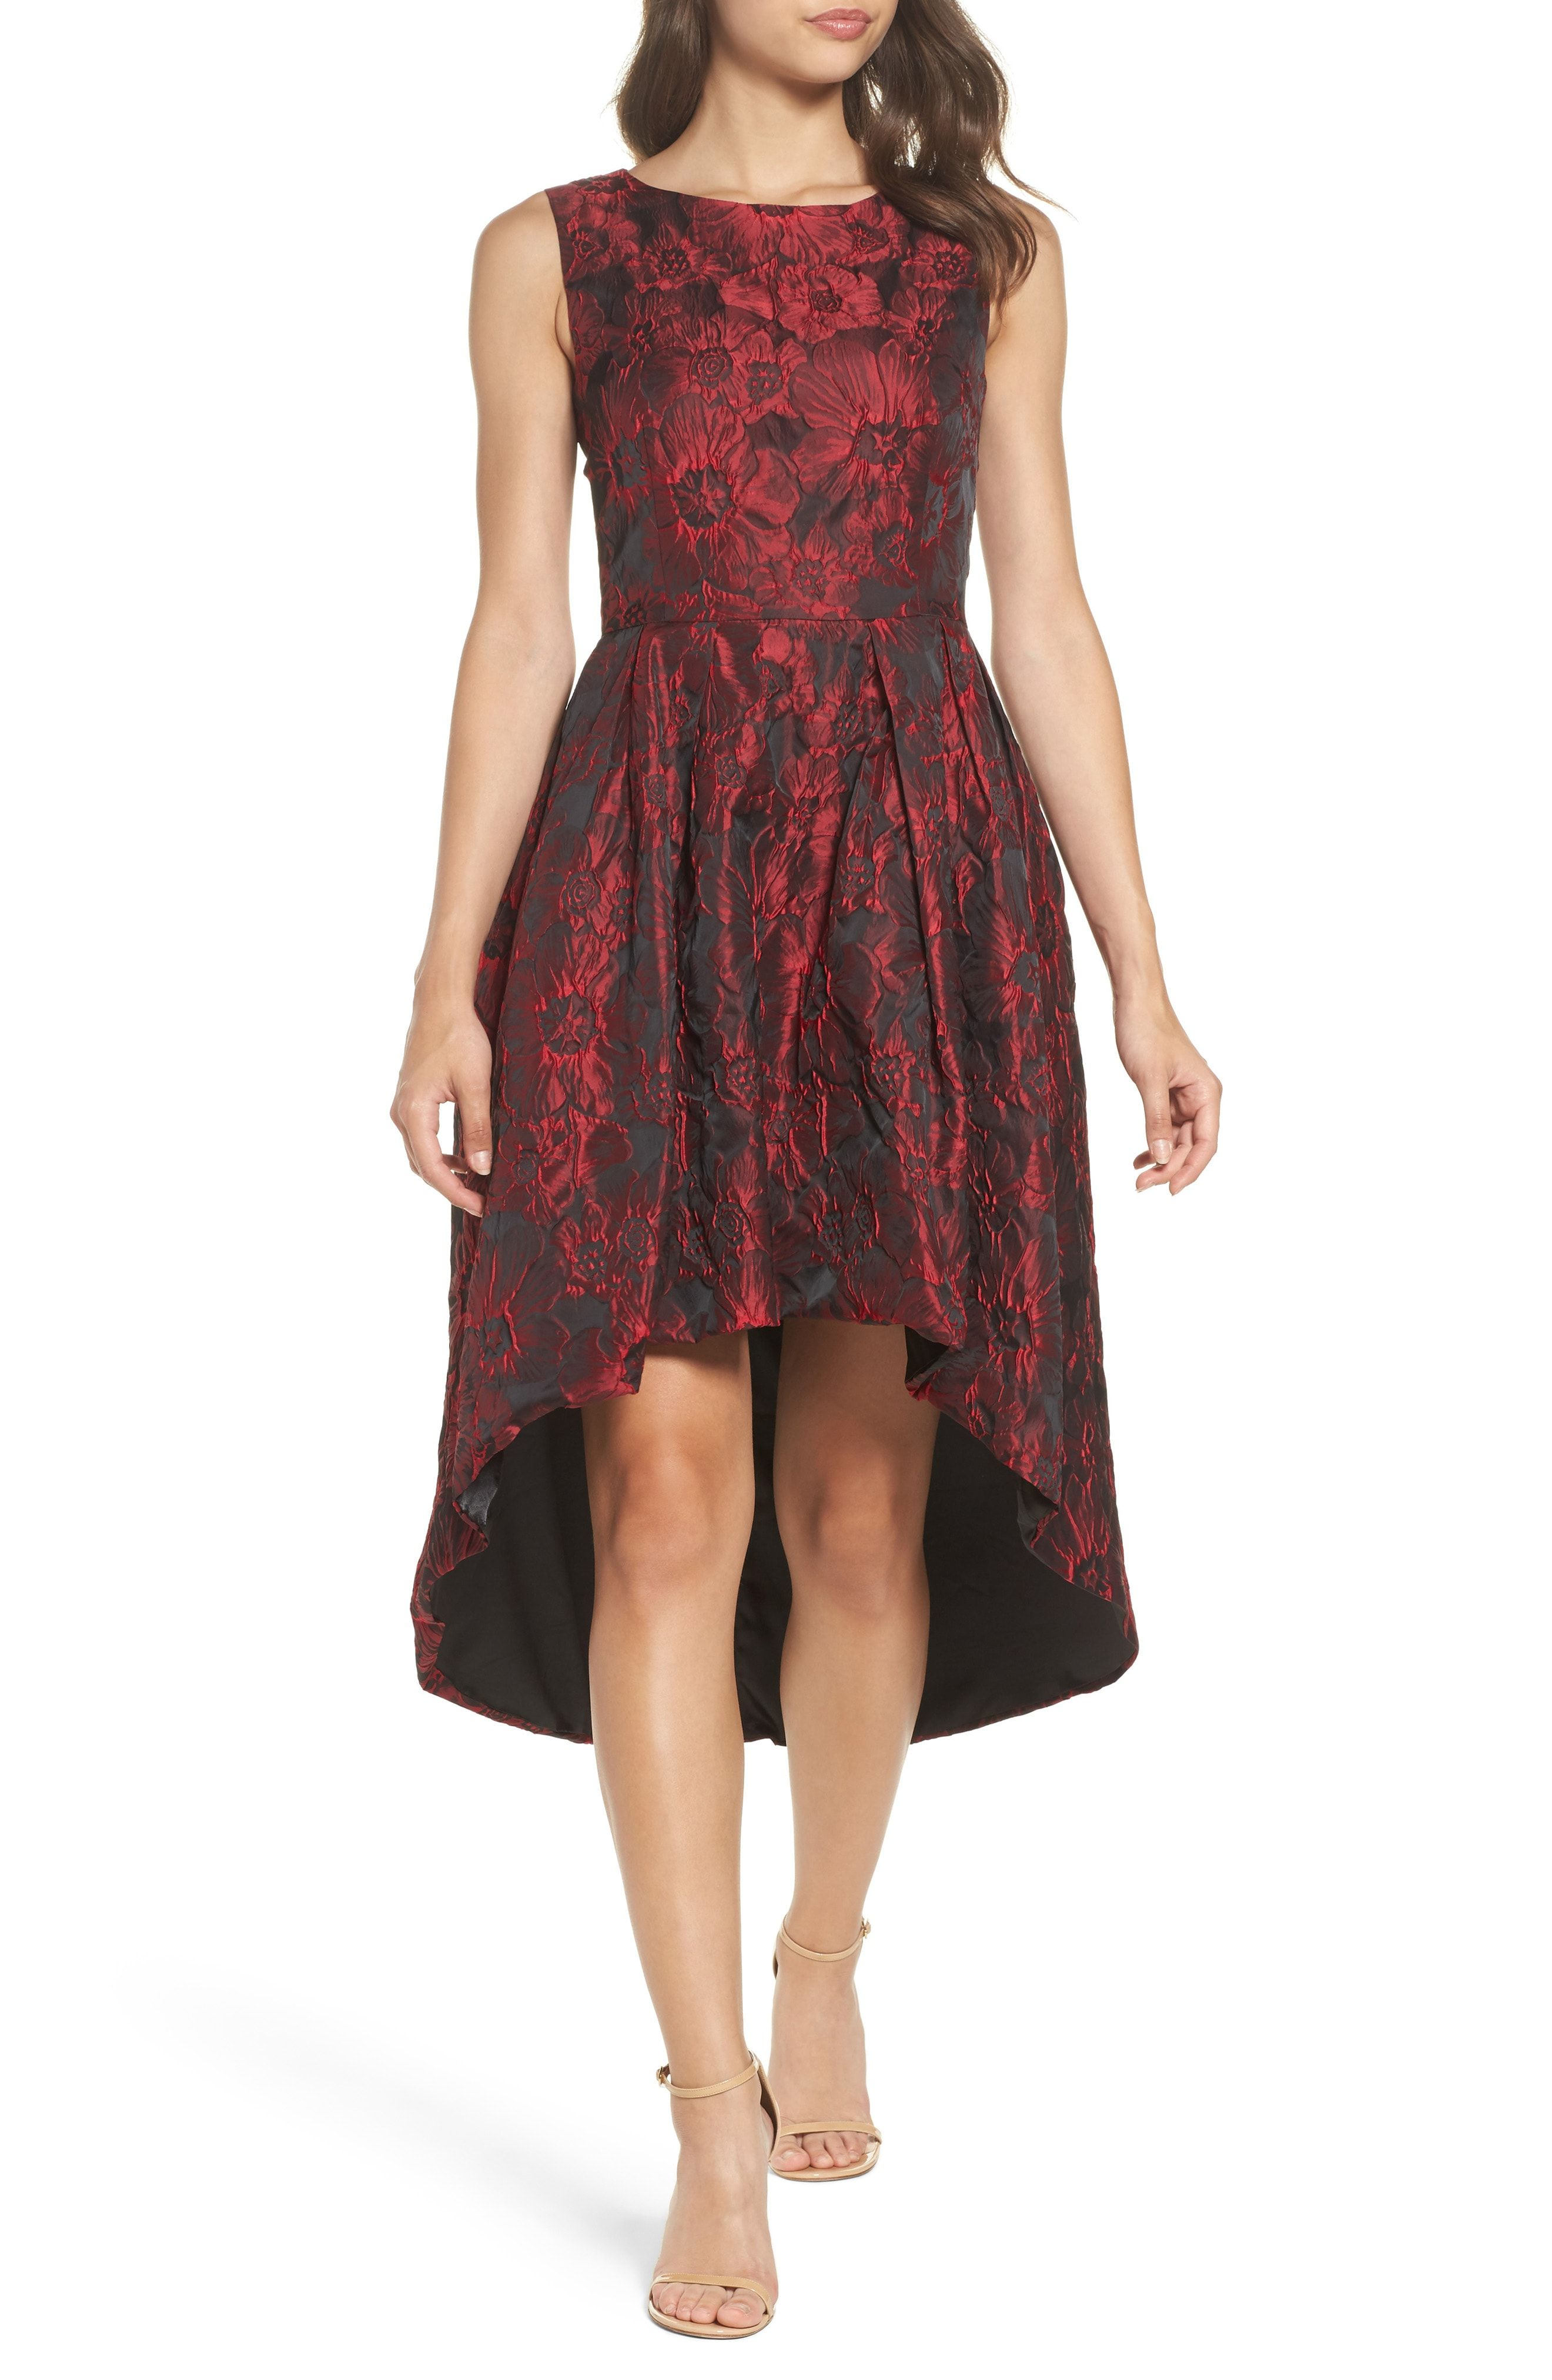 Nordstrom dresses wedding guest  Beautiful Forest Lily Jacquard HighLow Dress online